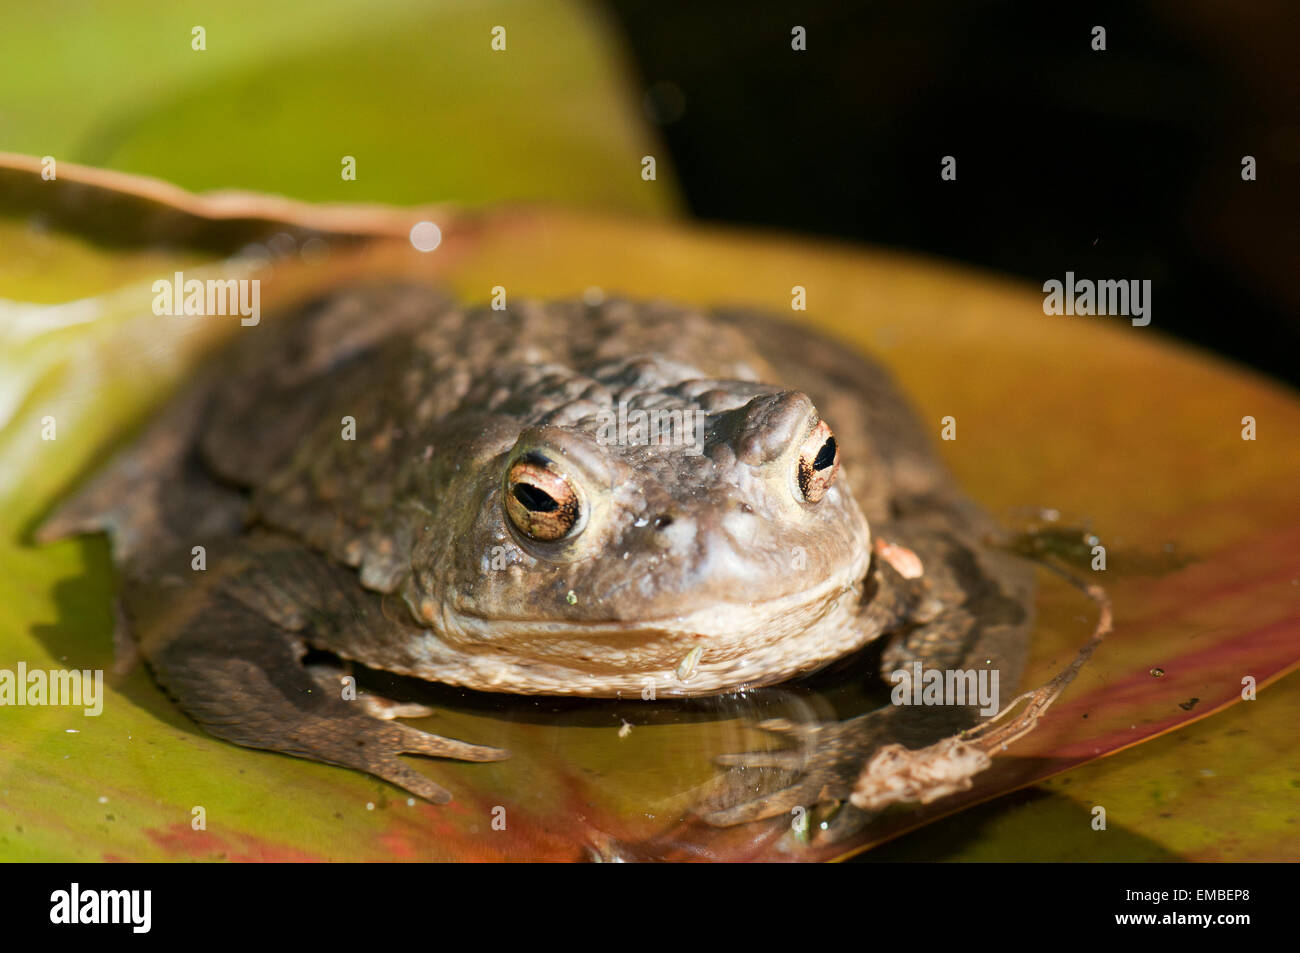 Common Toad (Bufo bufo) in the pond during the spawning period Stock Photo